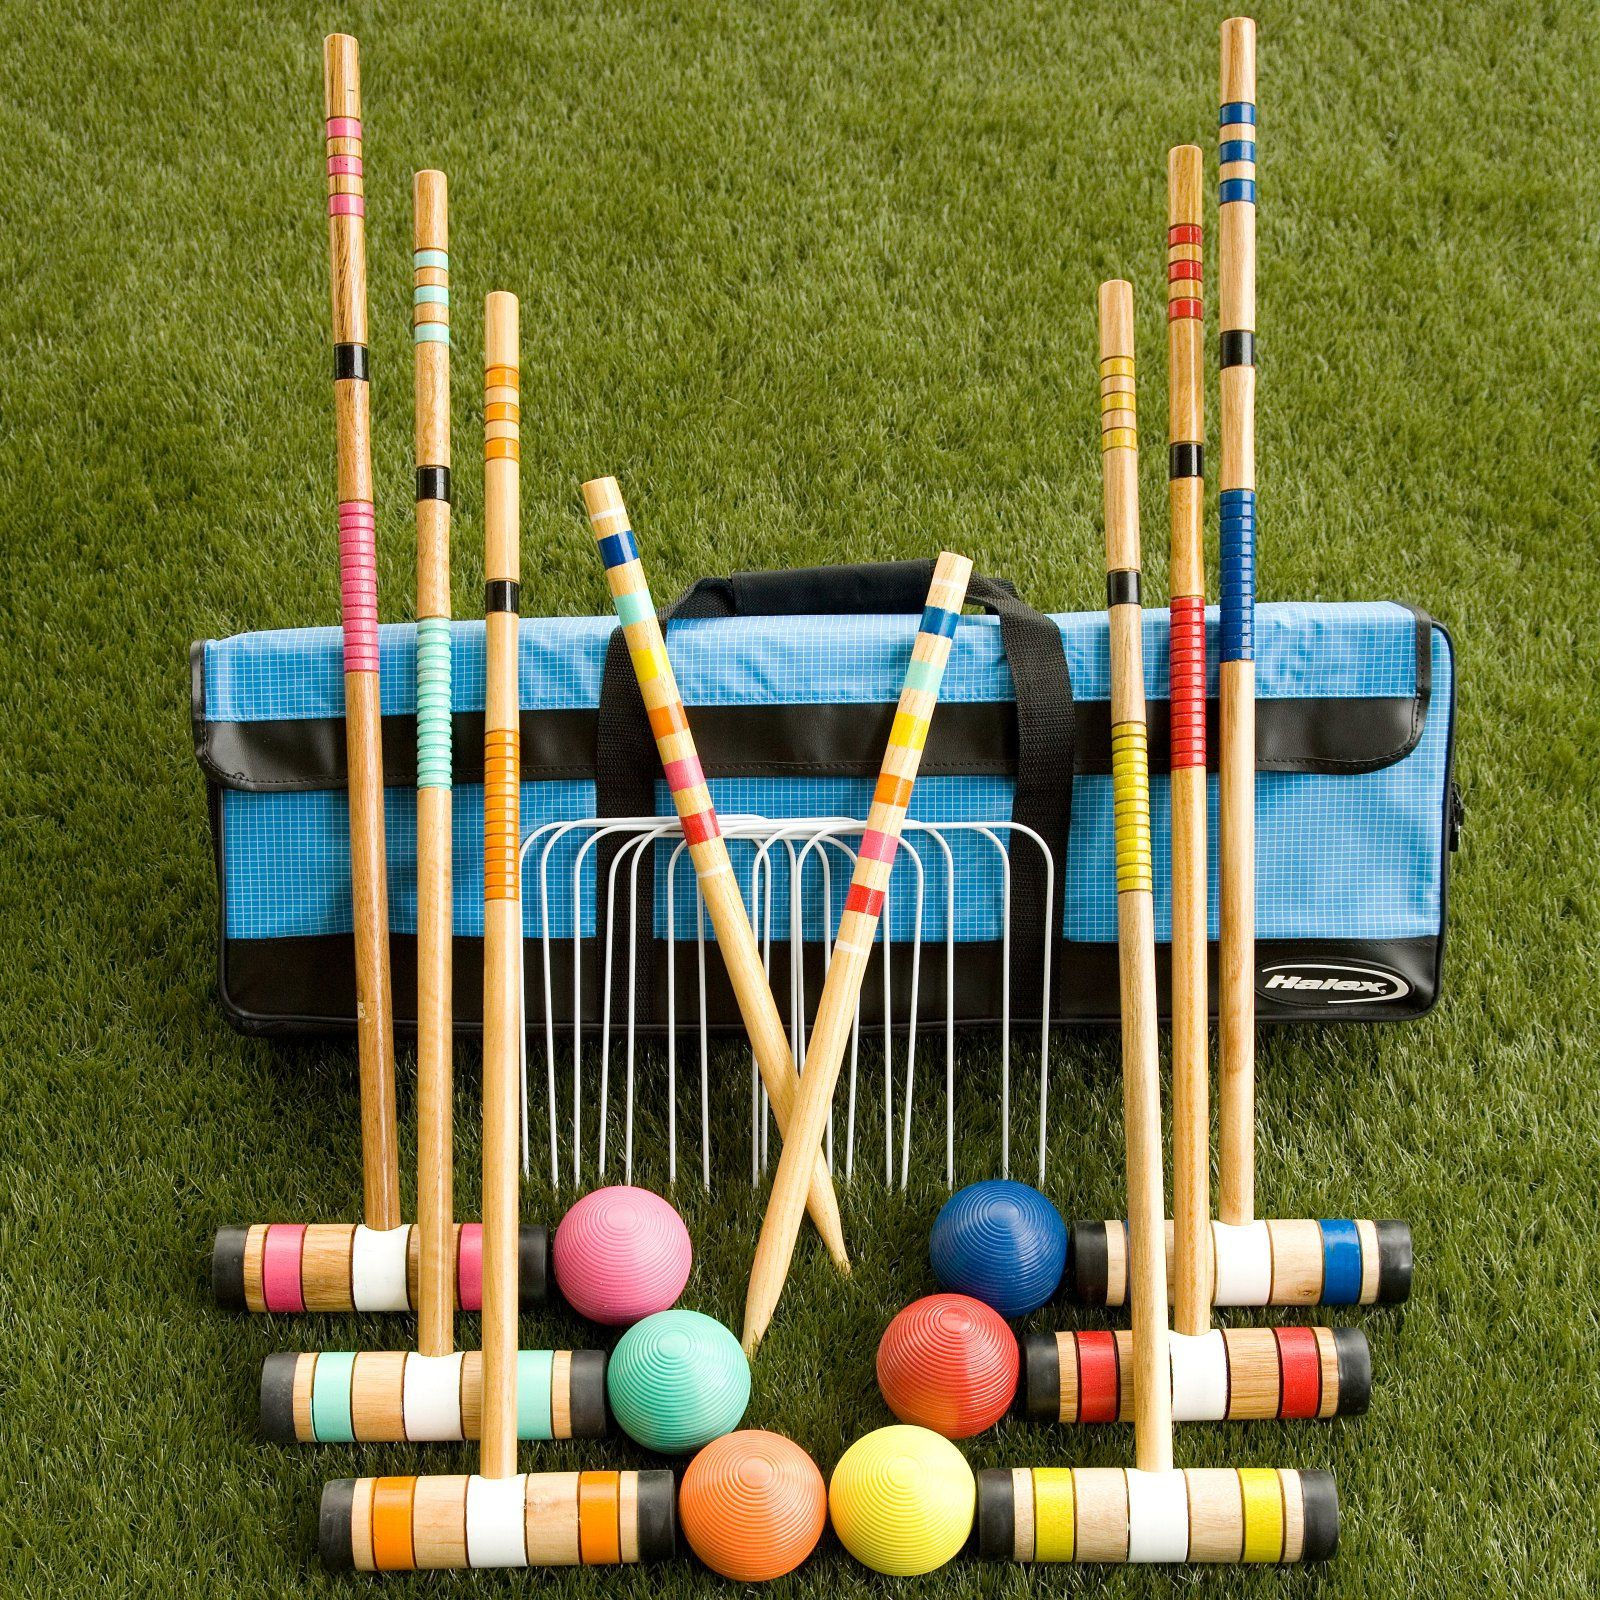 Lawn croquet old boy When I was young Pinterest